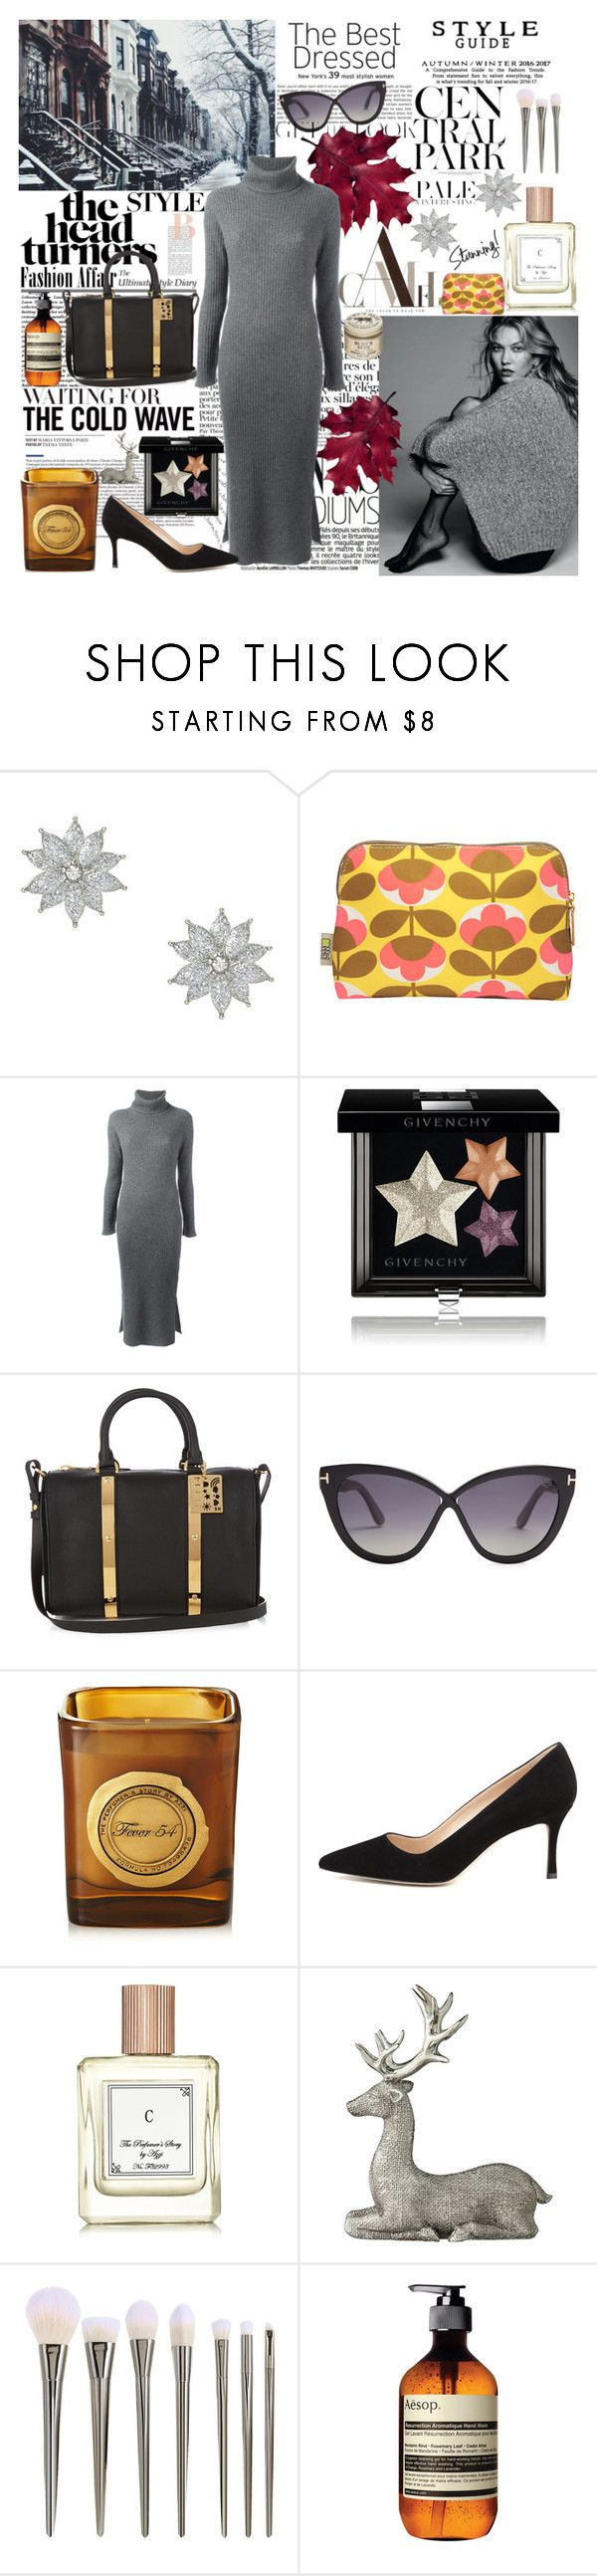 """The cold wave"" by carlamar ❤ liked on Polyvore featuring claire's, Orla Kiely, Alice + Olivia, Givenchy, Sophie Hulme, Tom Ford, The Perfumer's Story by Azzi, Manolo Blahnik, Lene Bjerre and Lara"